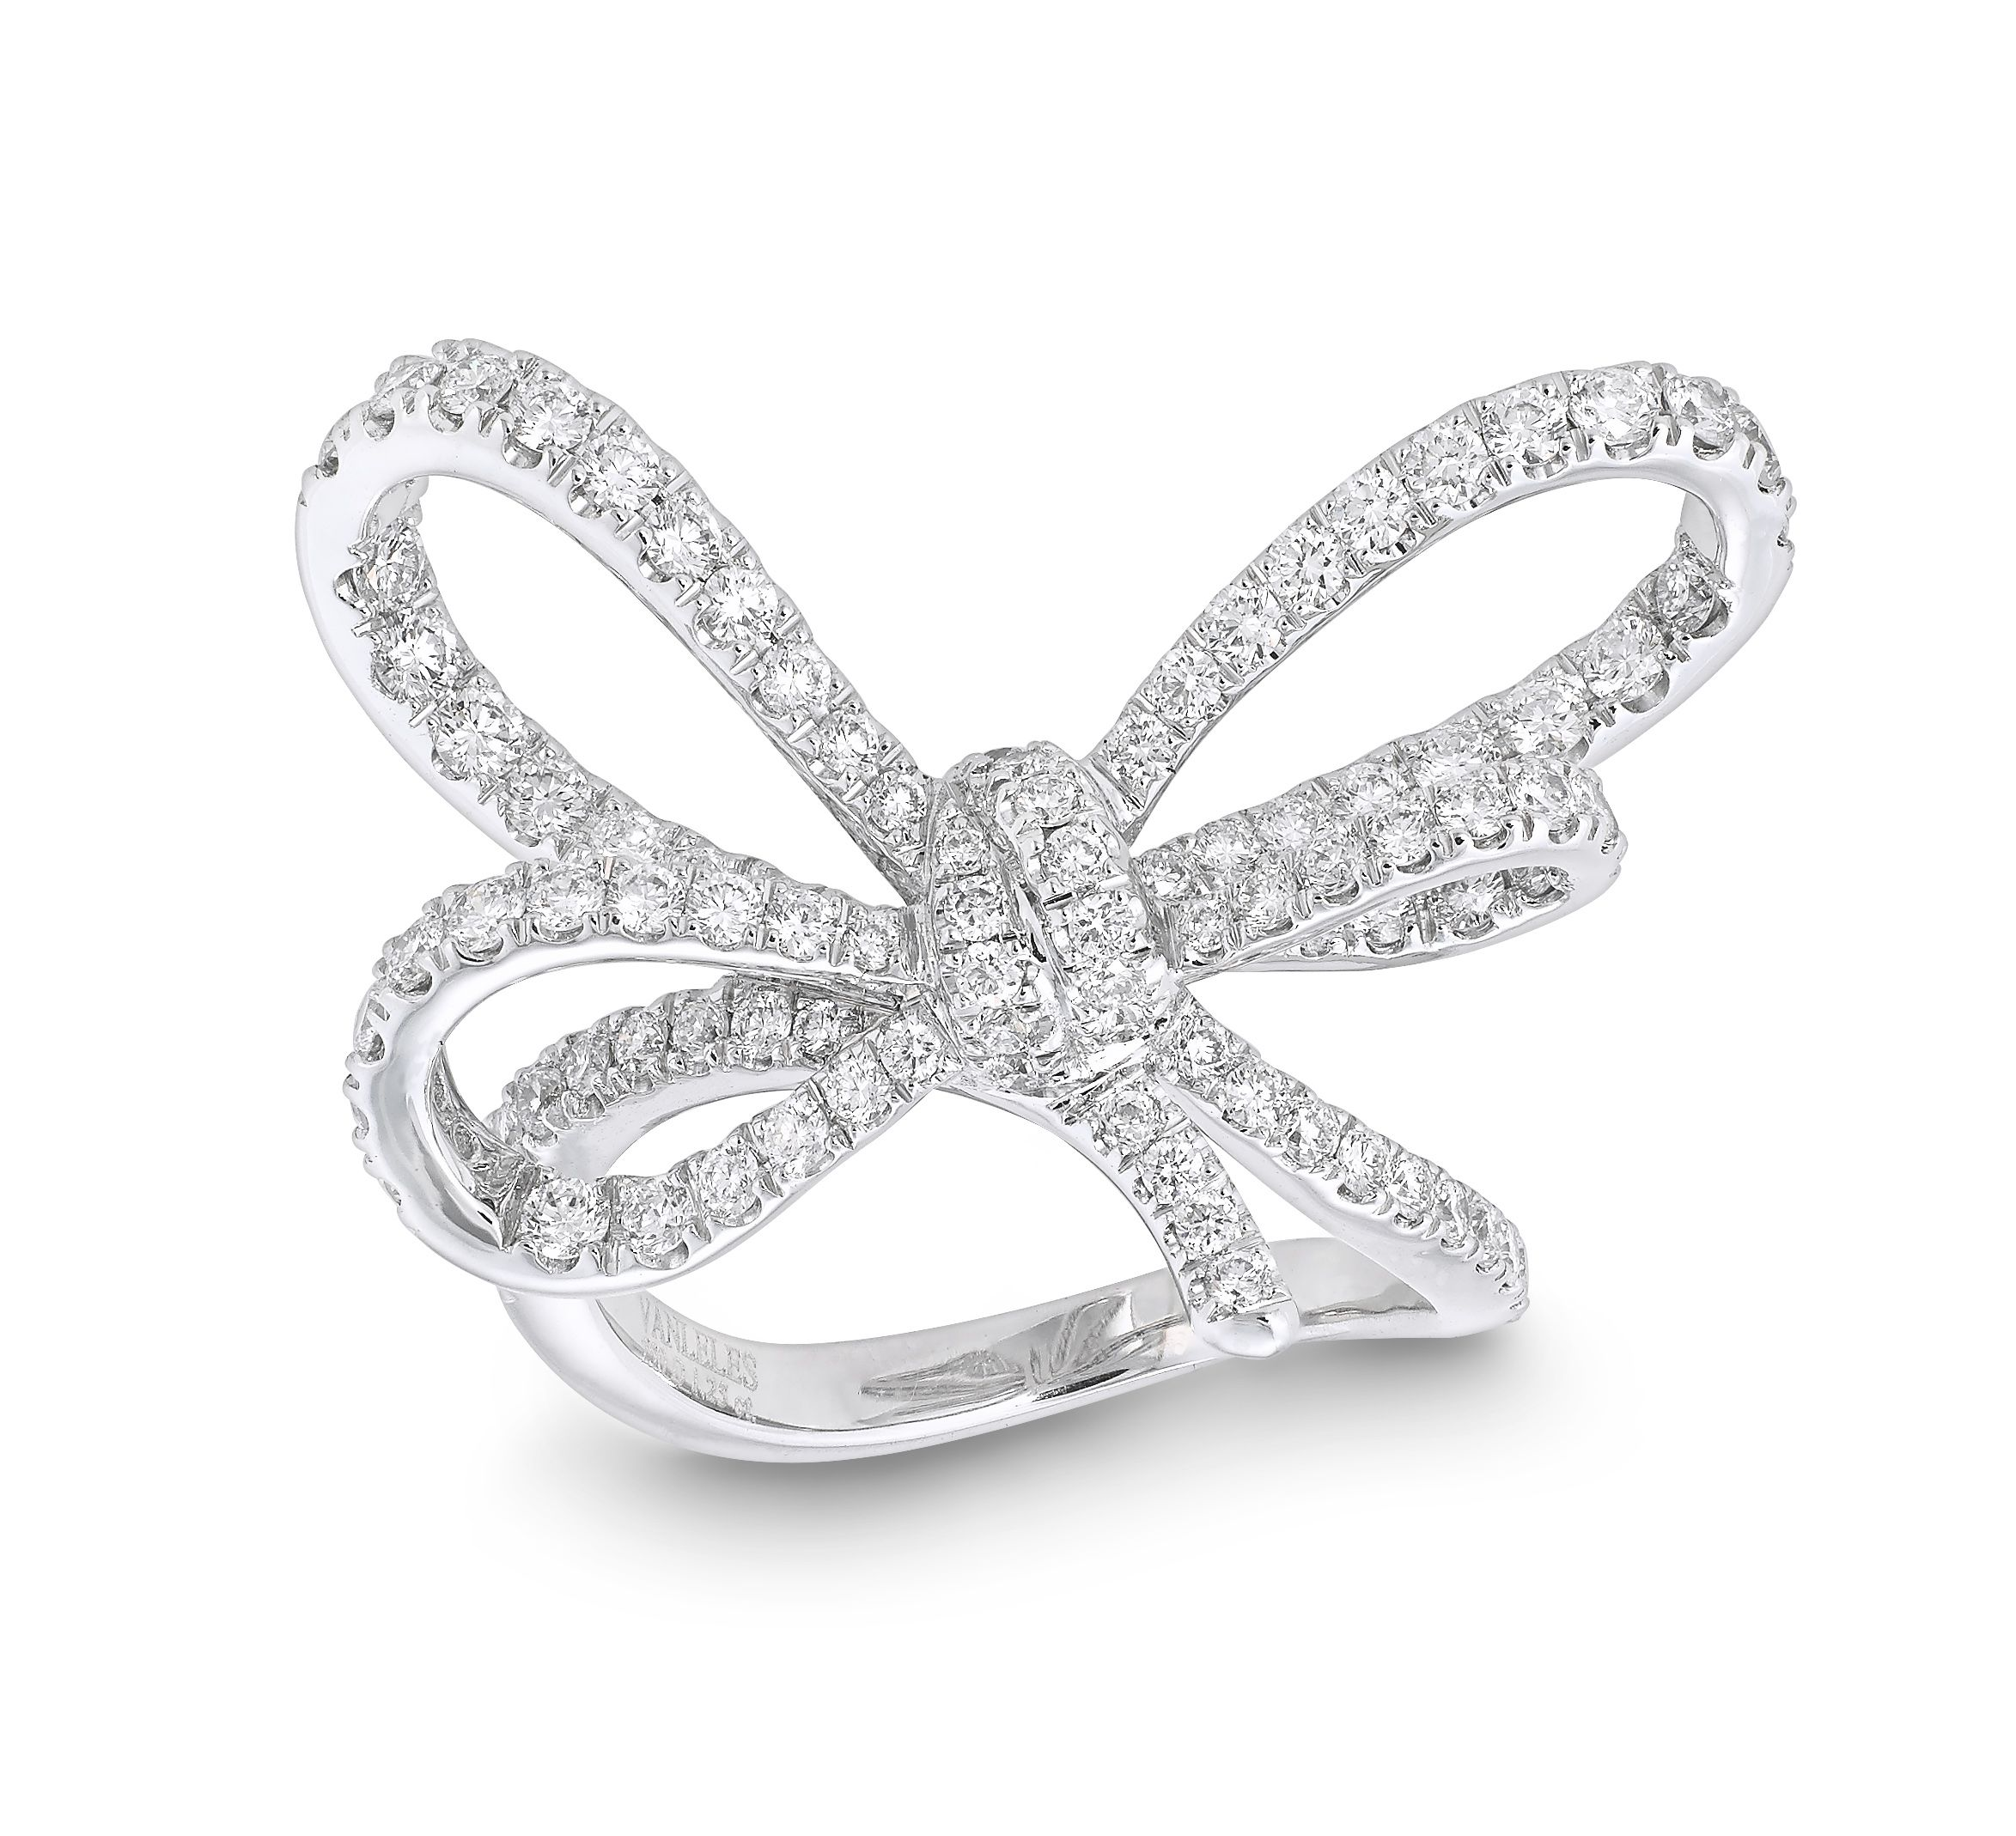 LYLA S BOW RING Set in 18K white gold Diamonds GVS x102=1 25